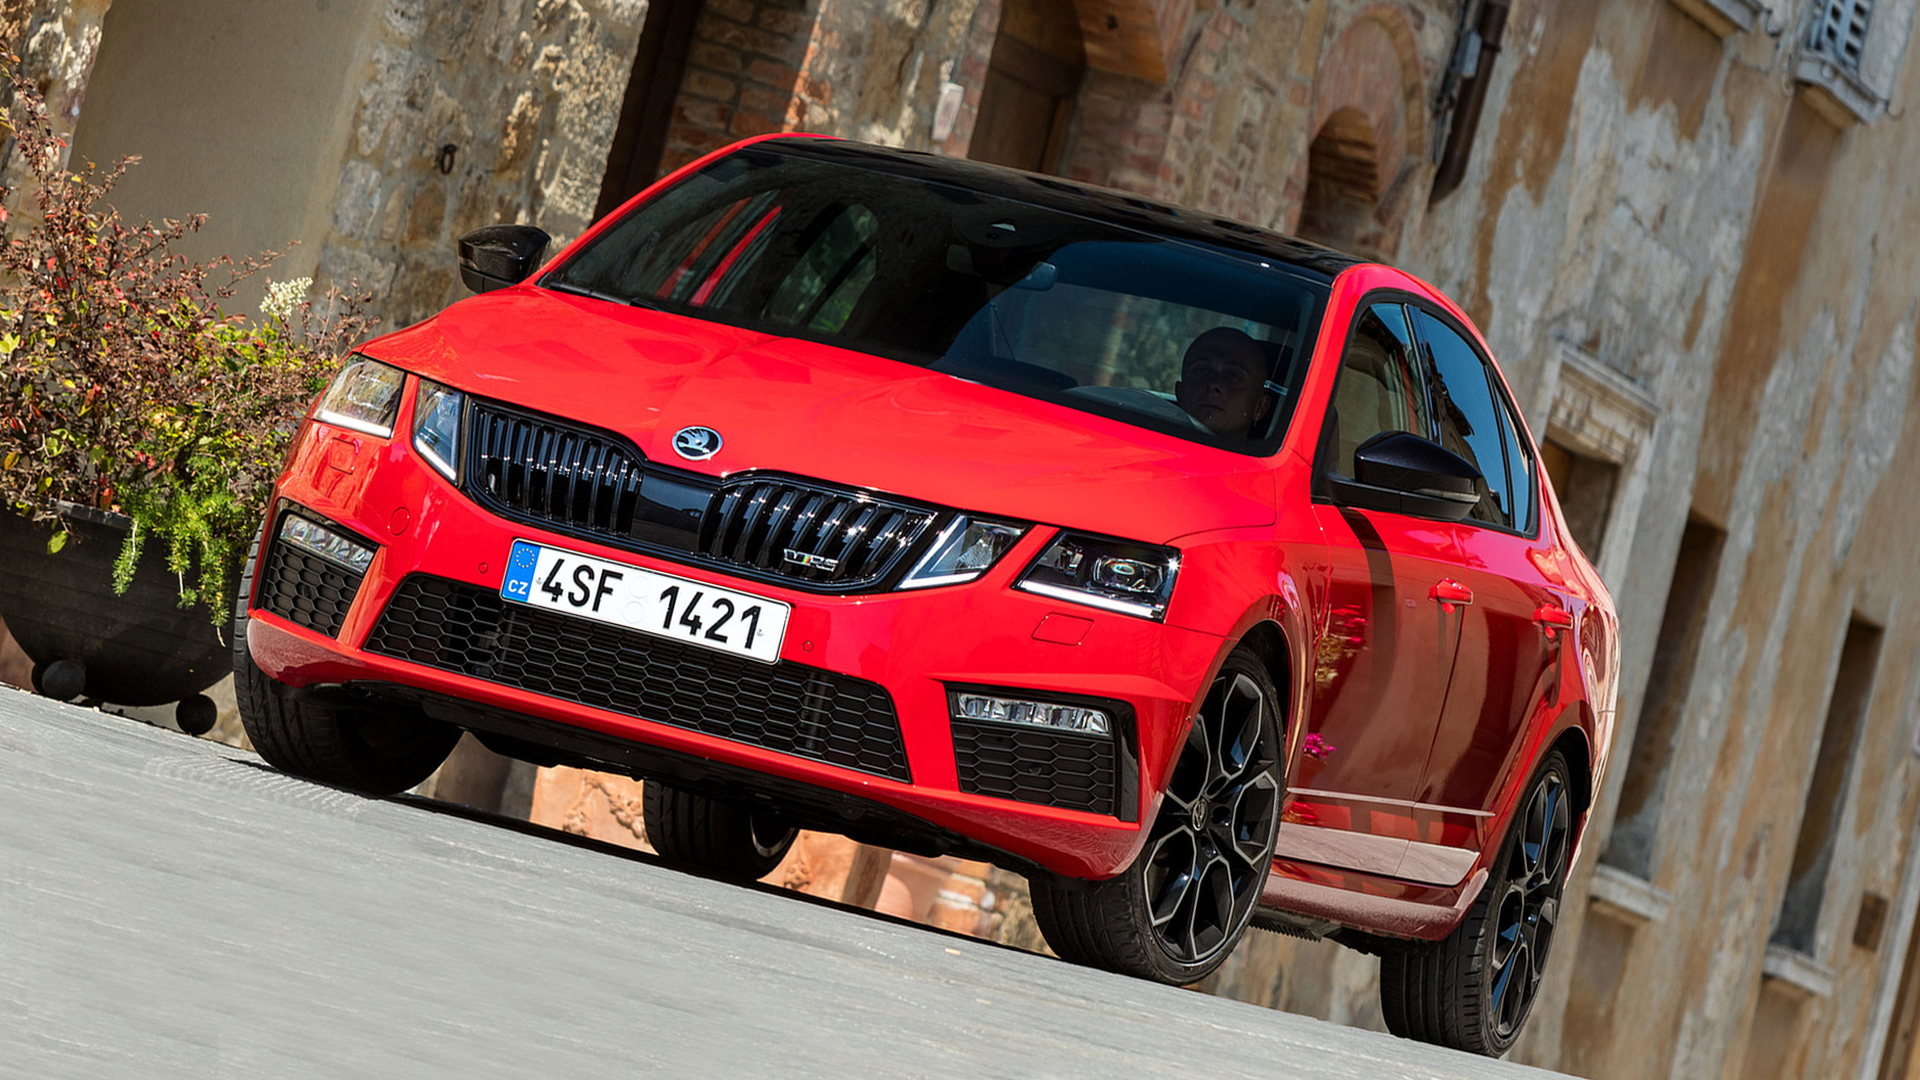 Release Data in USA New Skoda Octavia 2020 Model Year